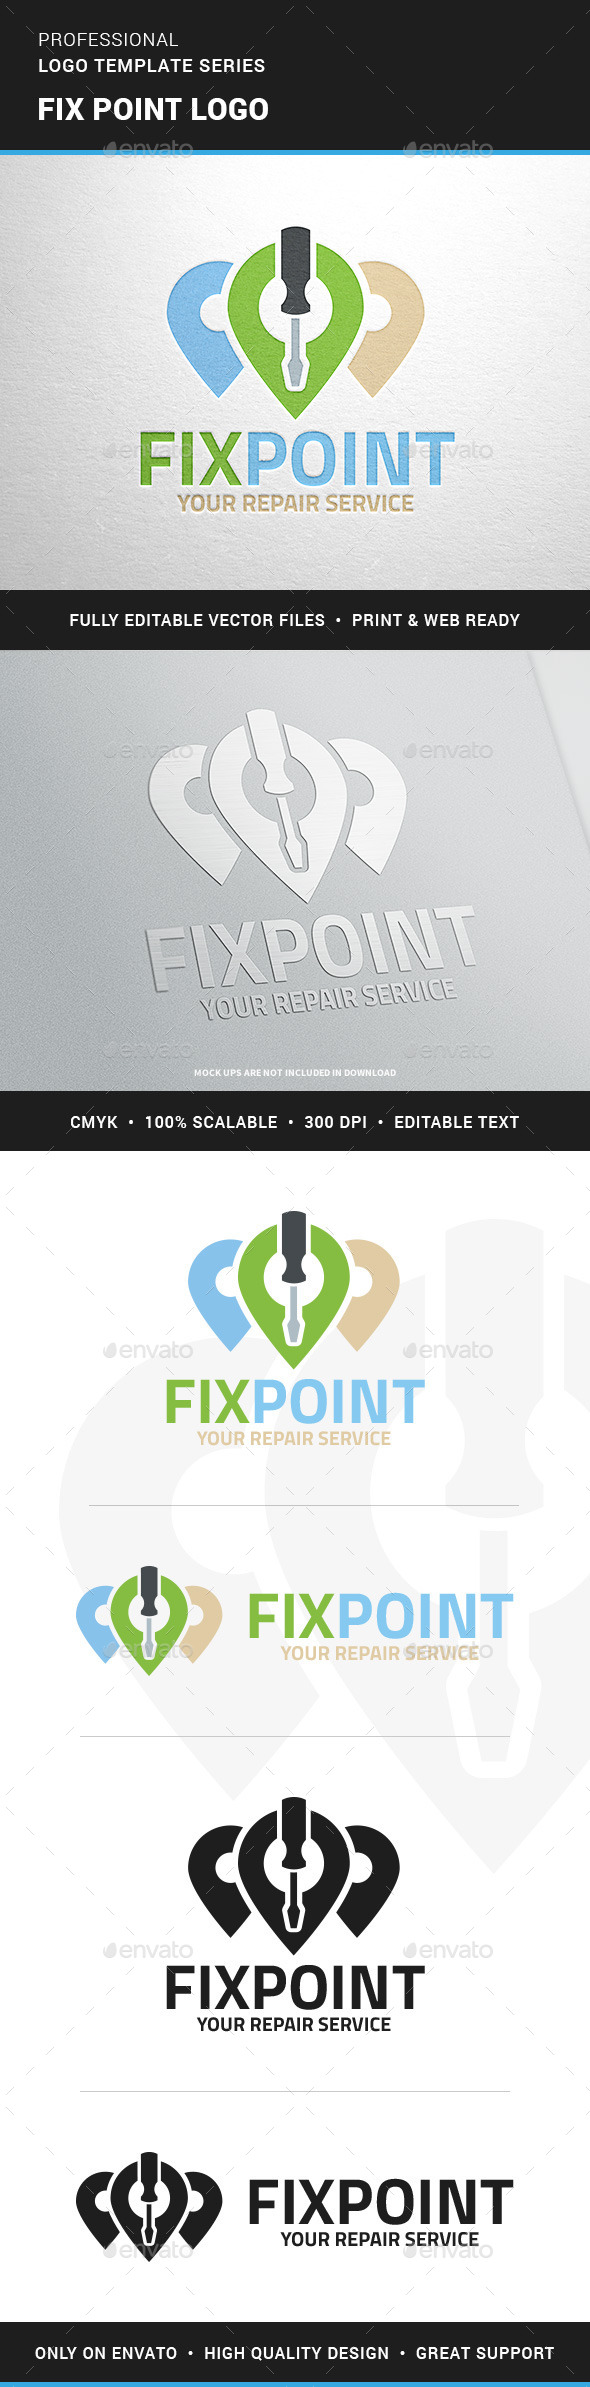 Fix Point Logo Template - Objects Logo Templates